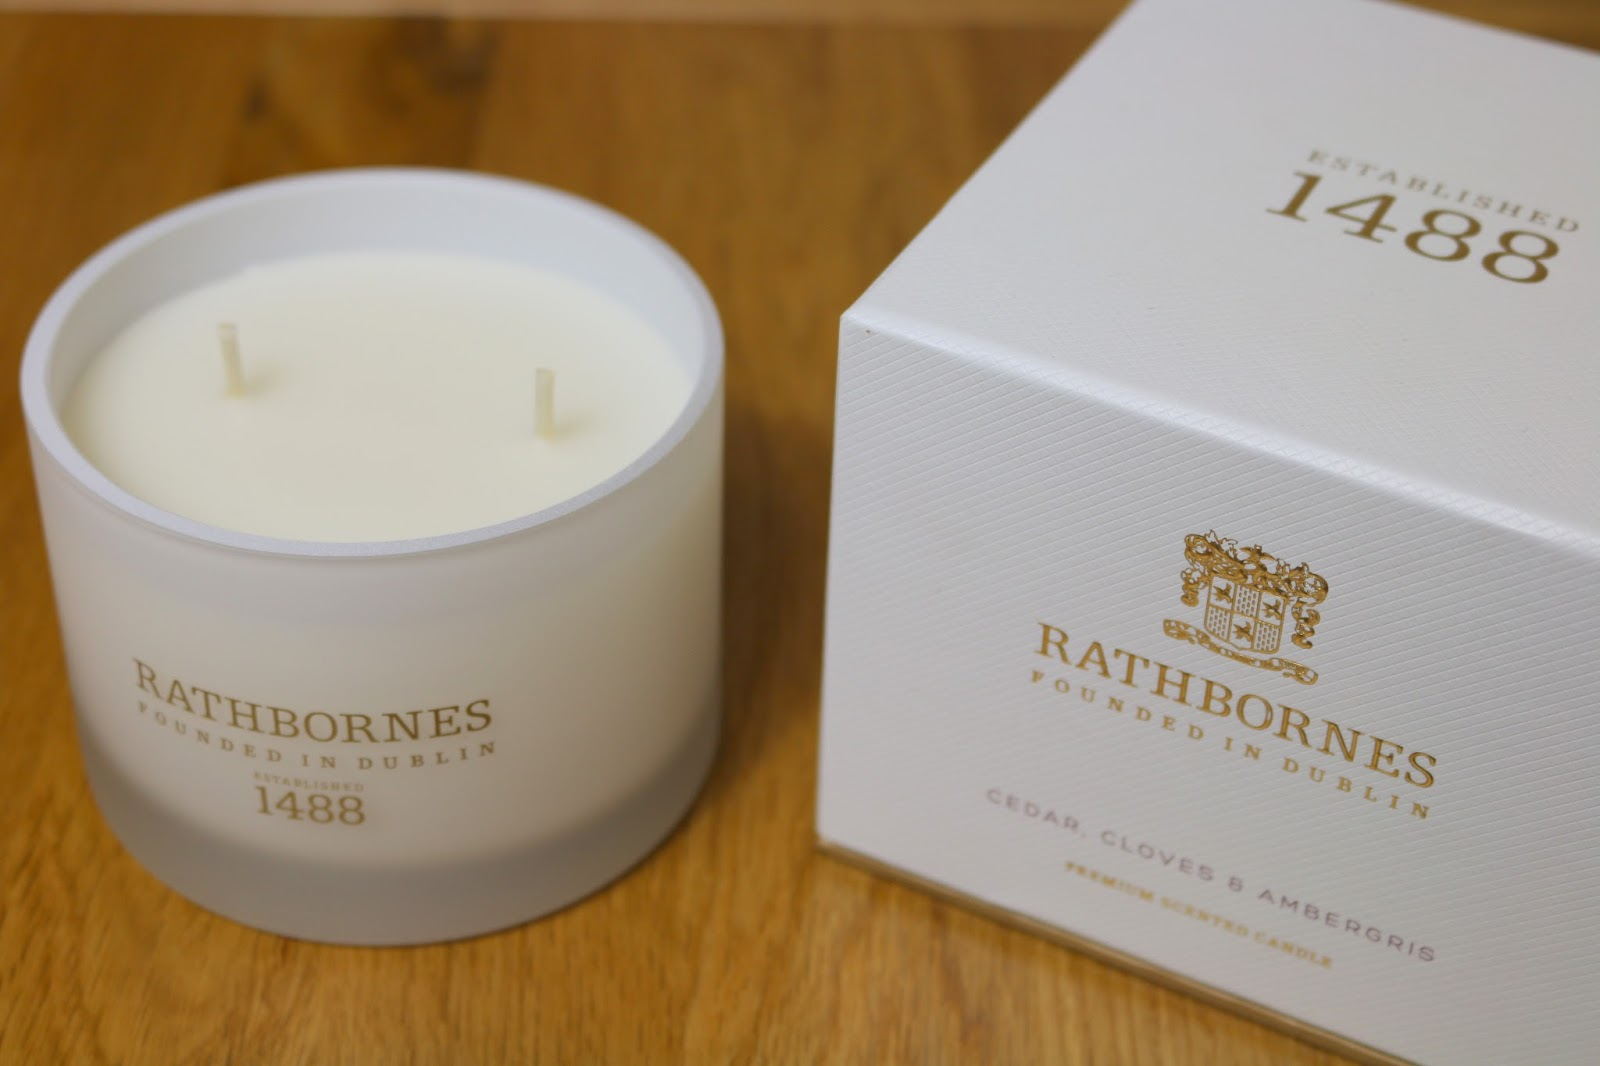 Rathbornes Cedar, Cloves and Ambergris Scented Classic Candle